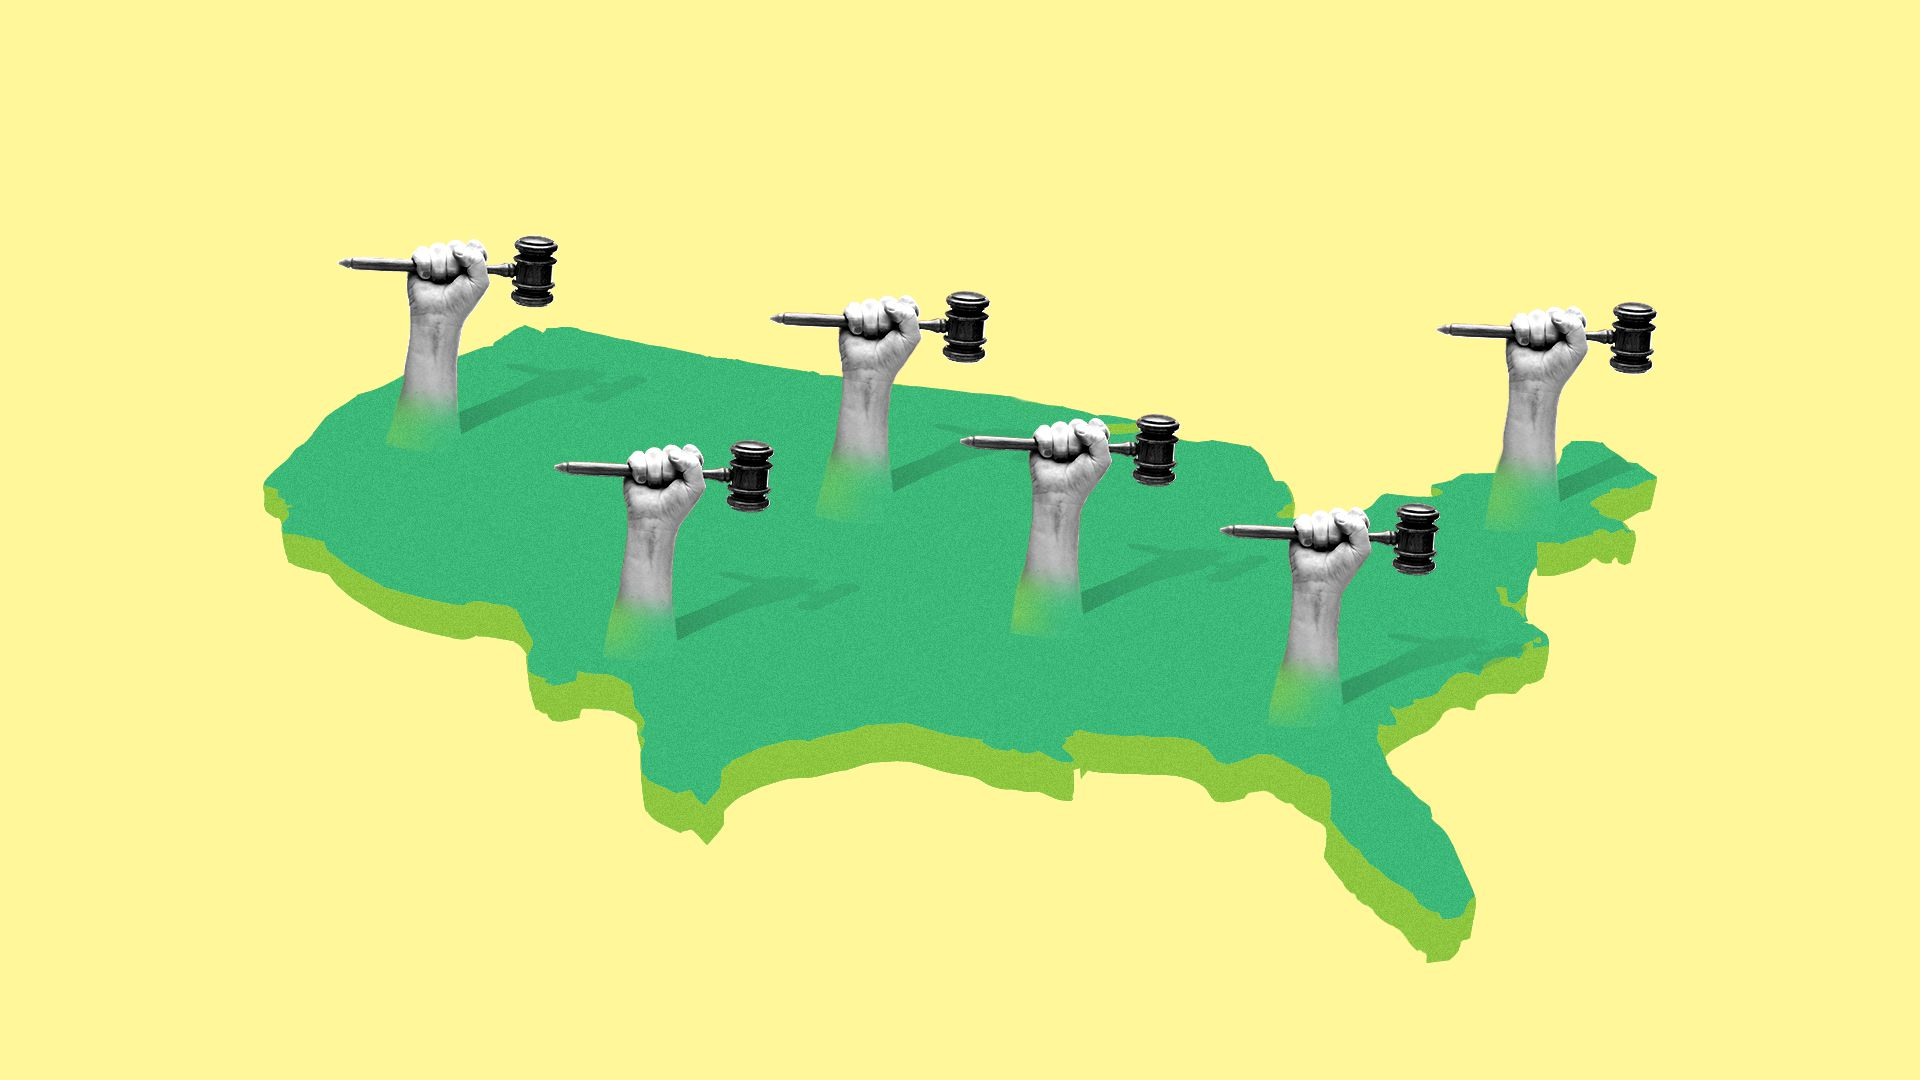 An illustration with a yellow background a a green U.S. map with fists holding gavels sticking out of the map.